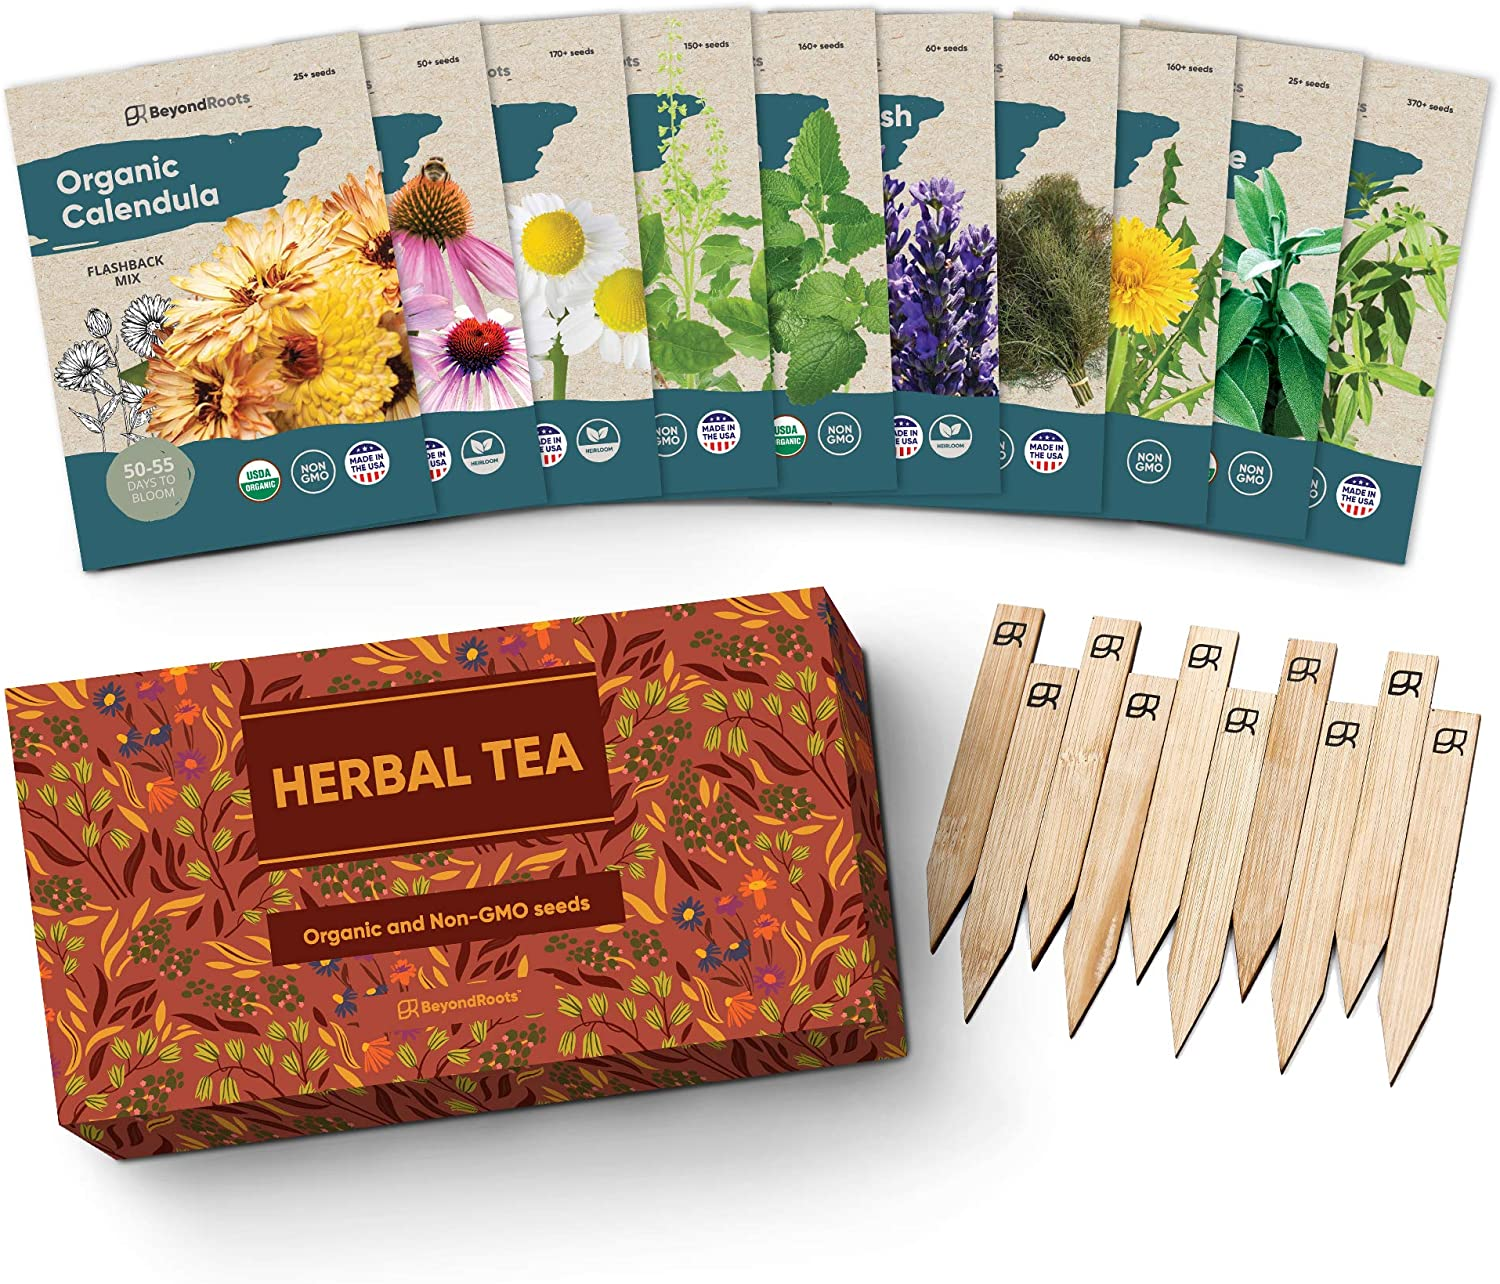 Herbal Tea Seeds Variety Pack - 10 Medicinal Herbs Seed Packets - Certified Organic Non GMO Herb Seeds - Gifts for Tea Lovers